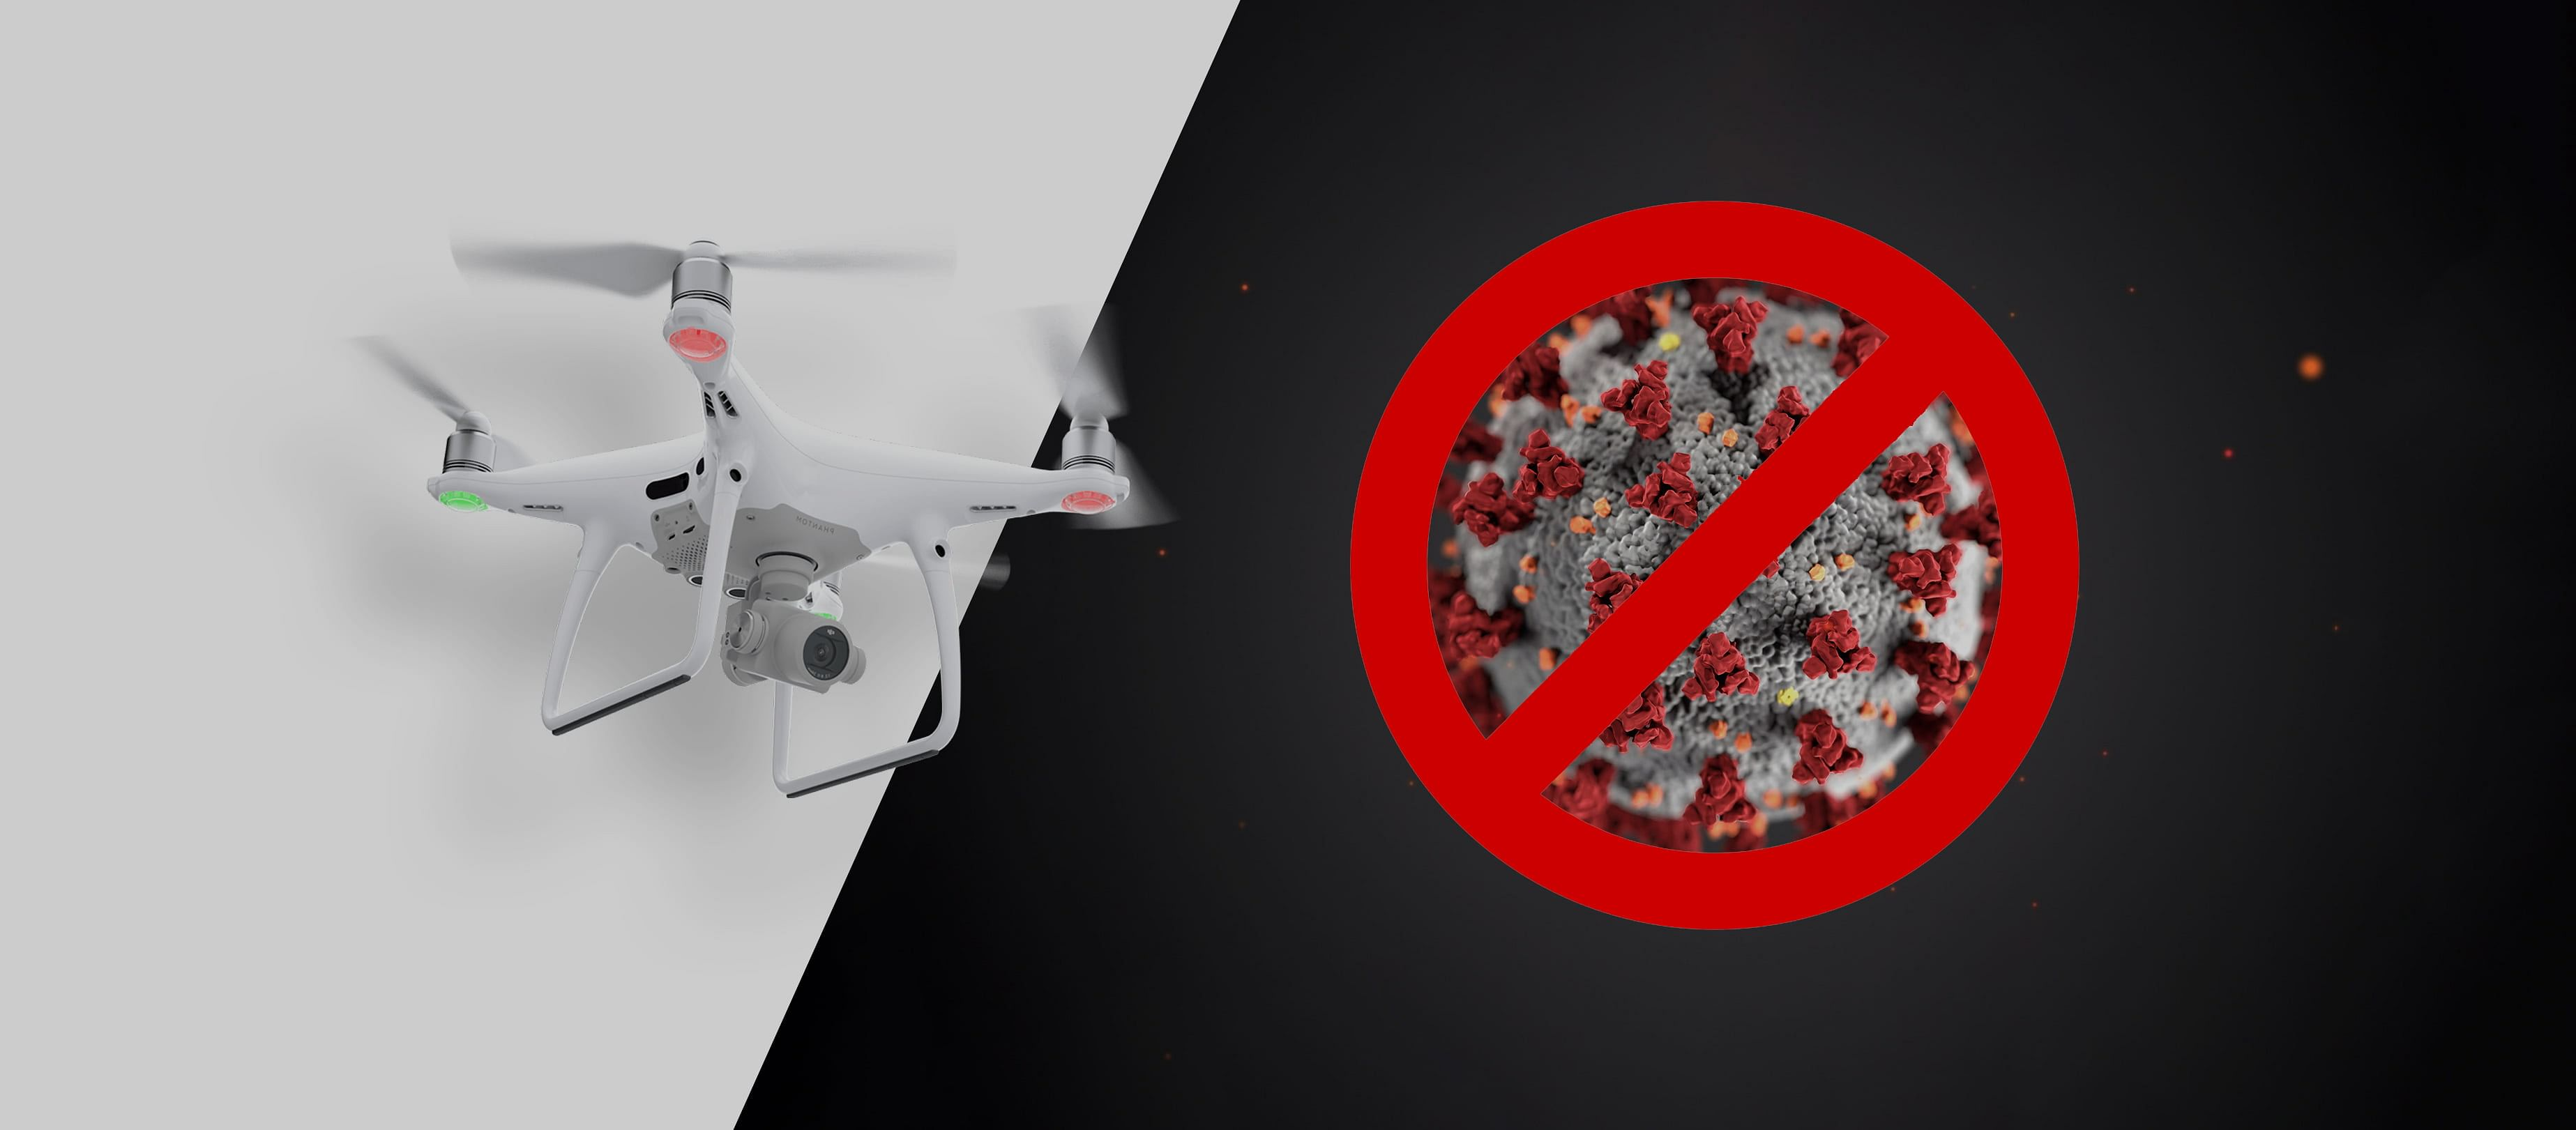 Drones Help Authorities & Businesses Fight COVID-19